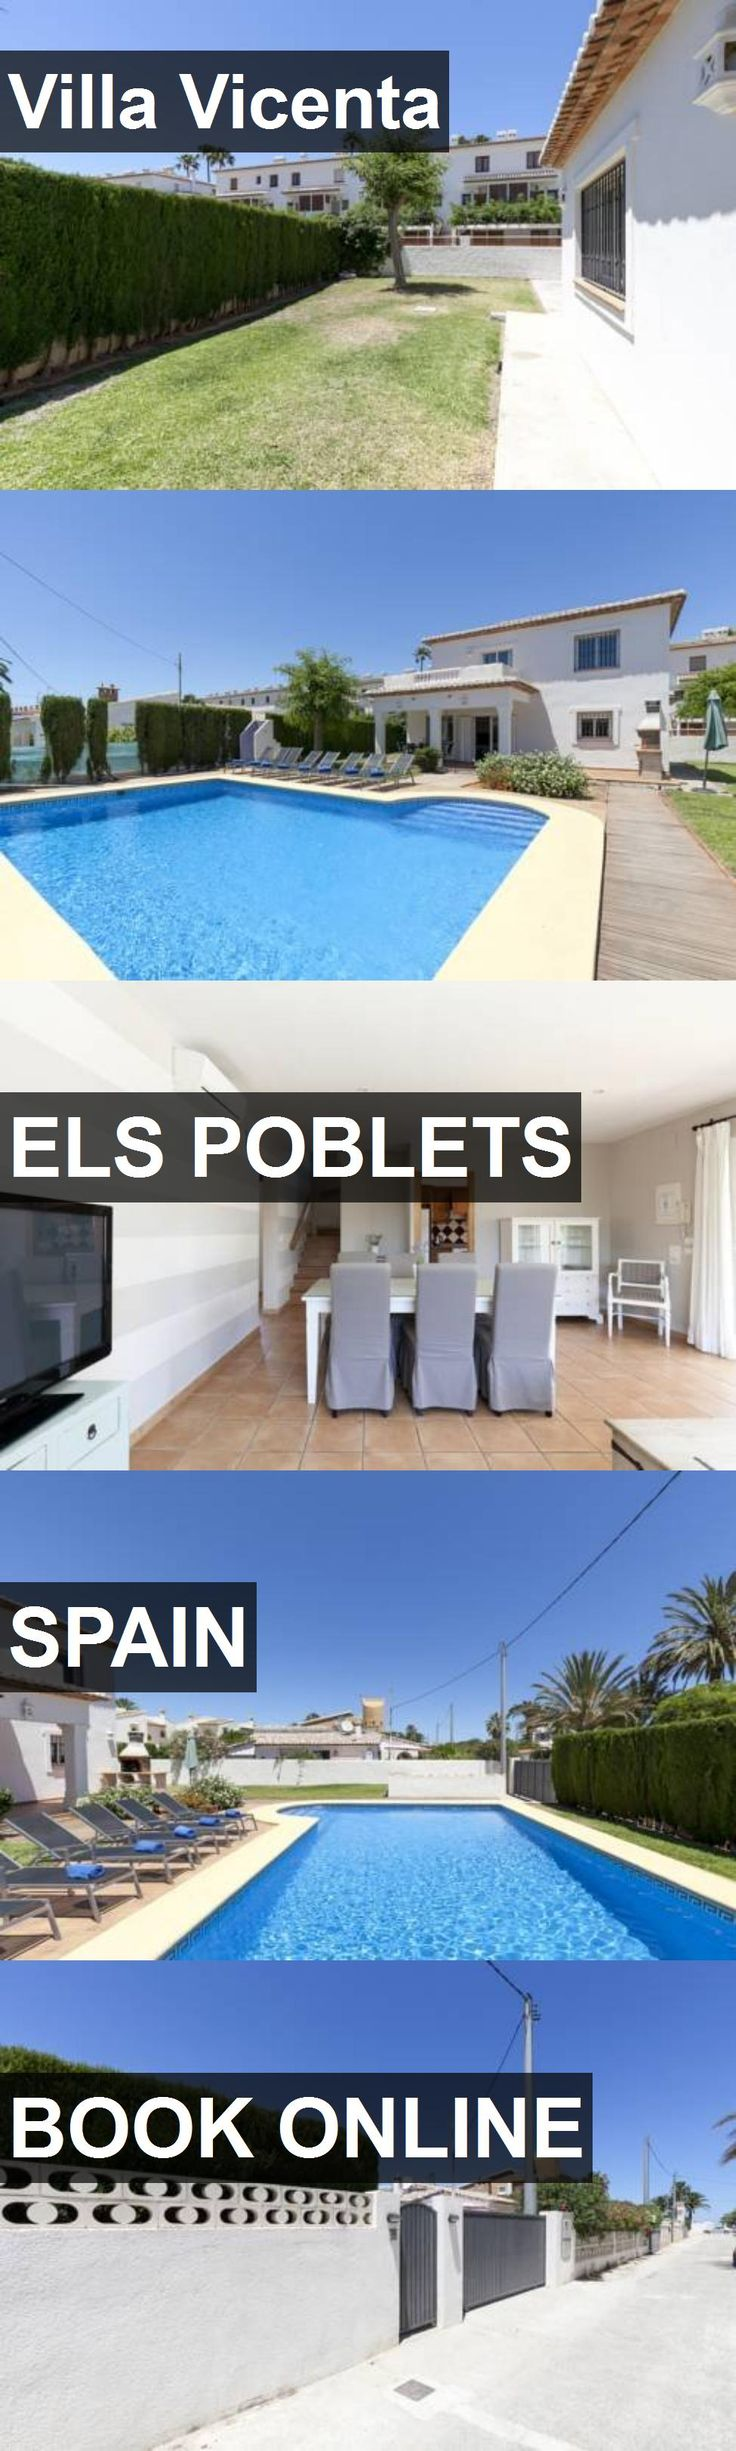 Hotel Villa Vicenta in Els Poblets, Spain. For more information, photos, reviews and best prices please follow the link. #Spain #ElsPoblets #travel #vacation #hotel